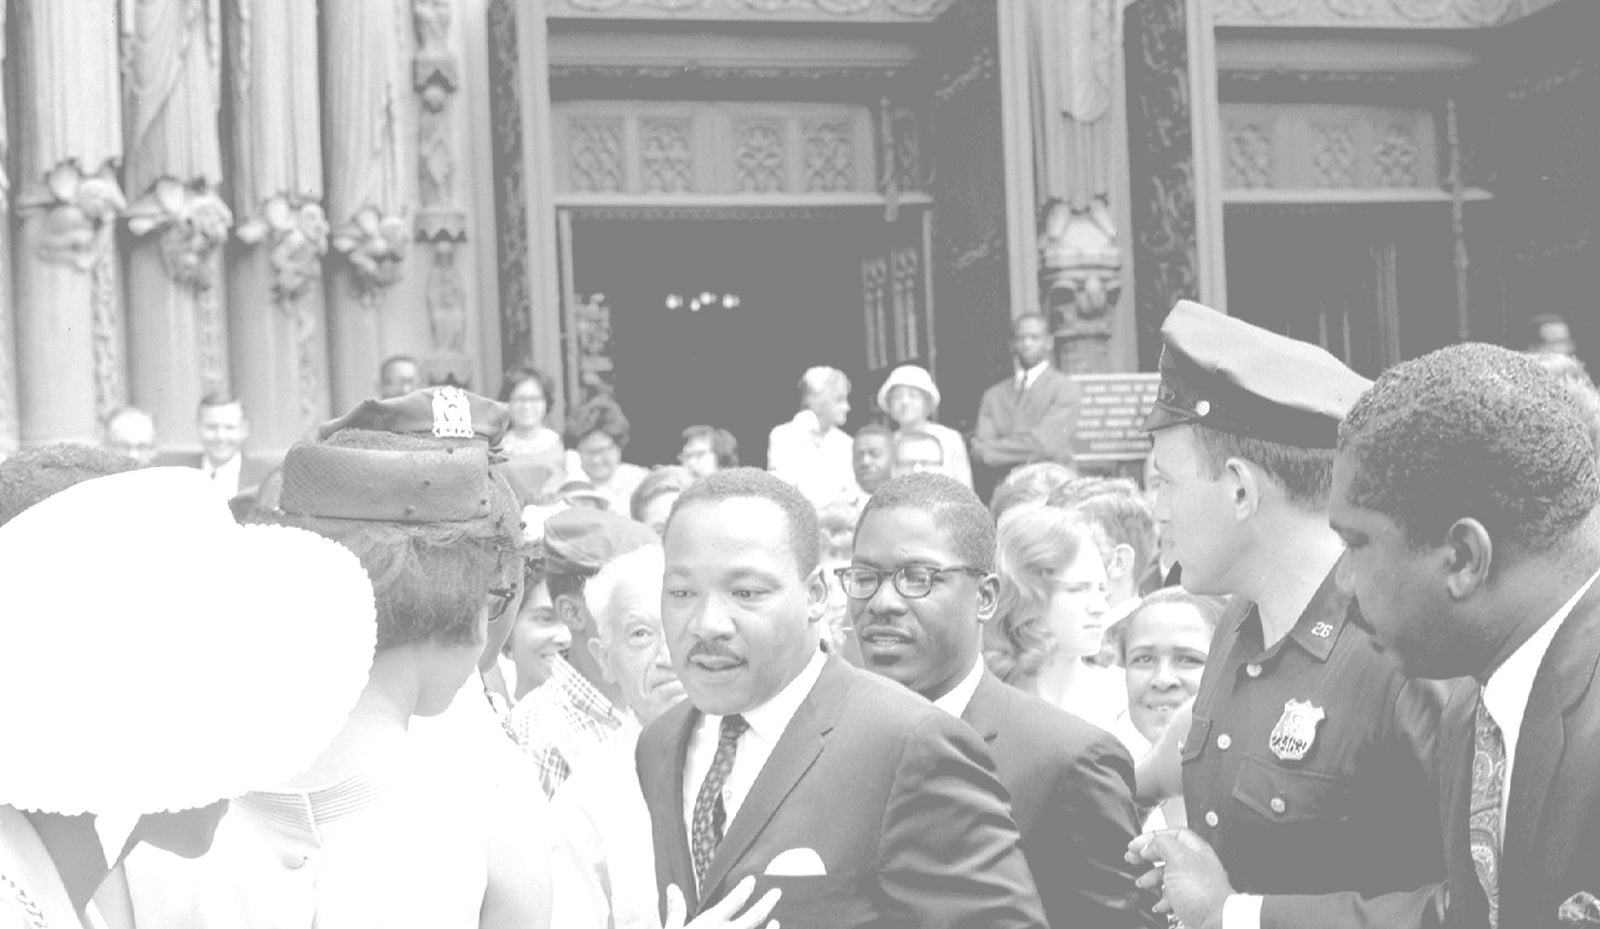 15 DOPE LINES OF INSPIRATION FROM MLK'S VIETNAM SPEECH